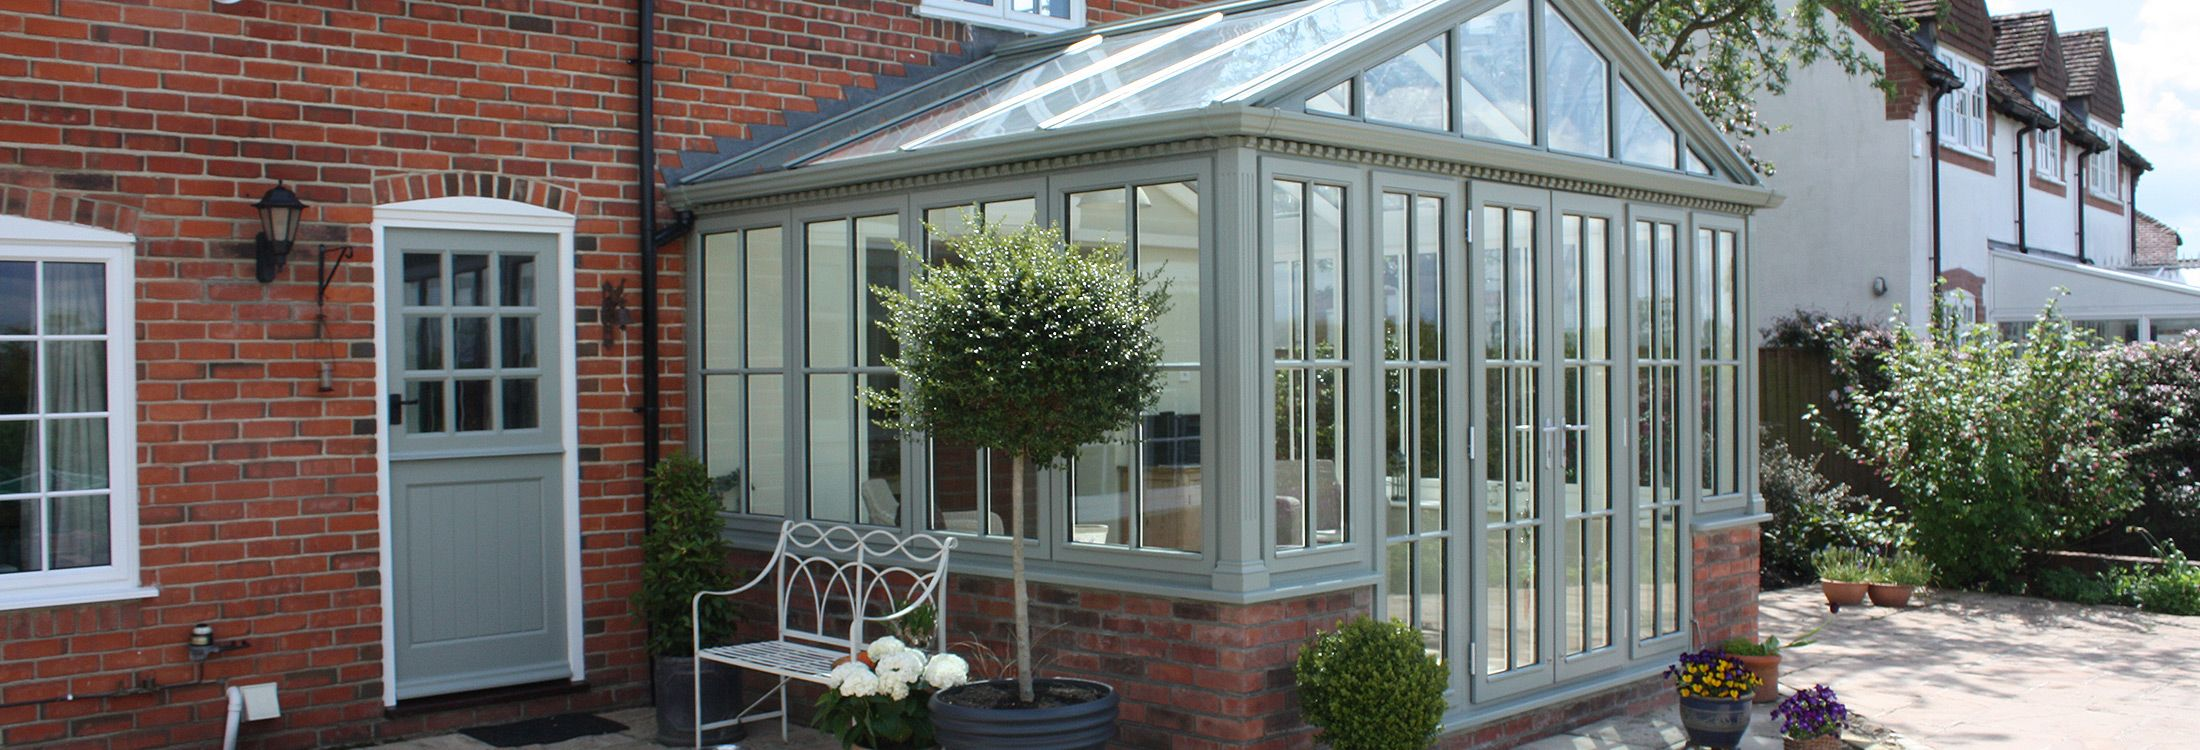 Midland Conservatories Ltd.